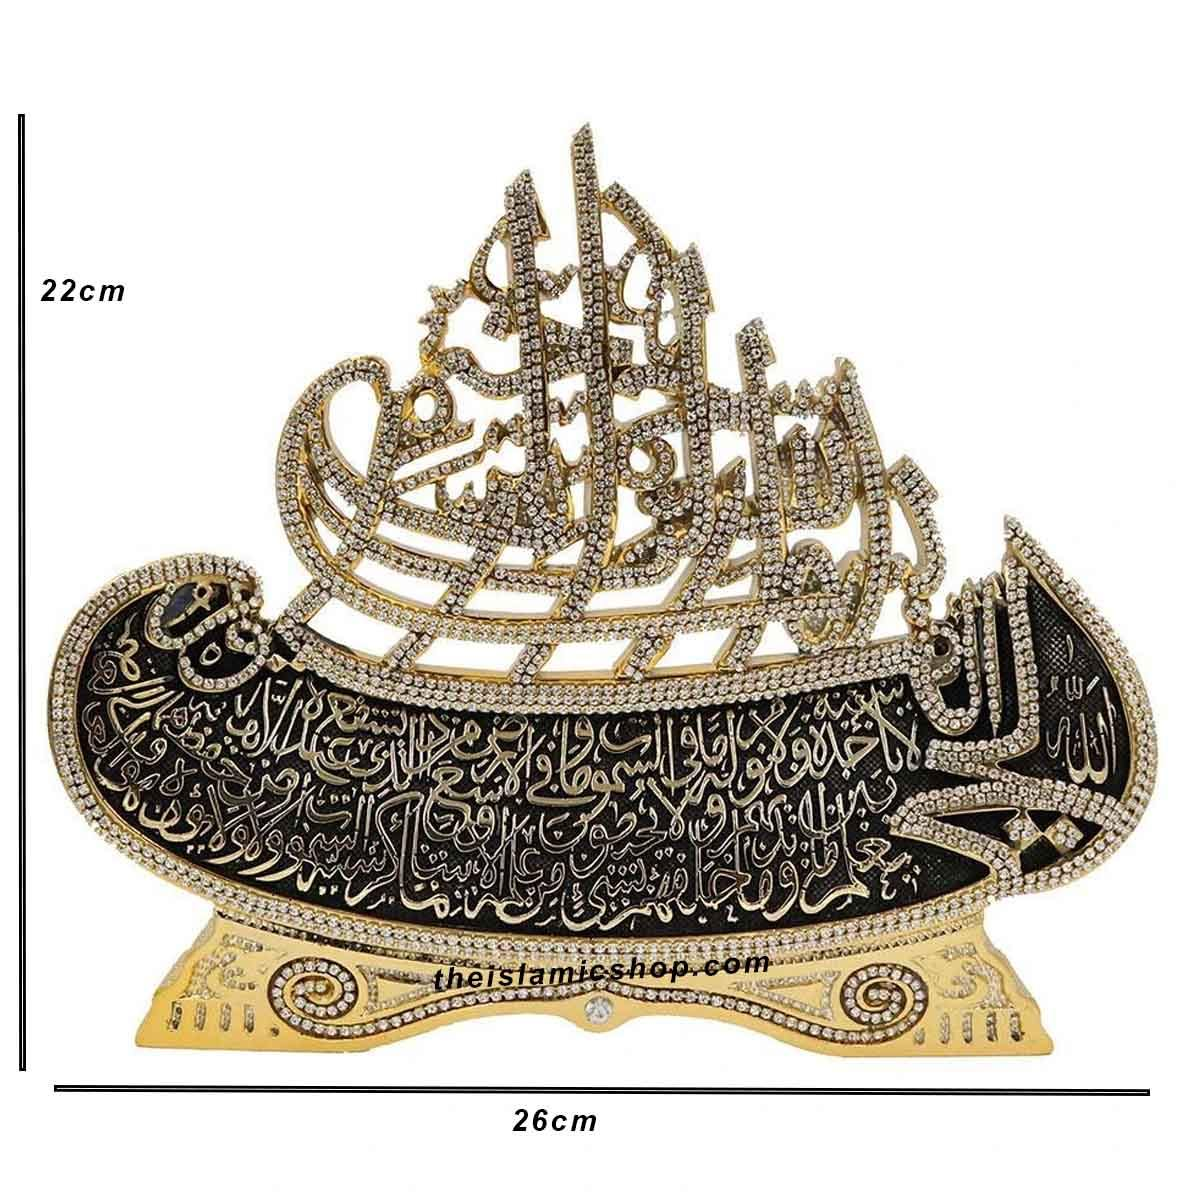 Islamic Table Decor Ornament inscribed with Bismillah & Ayatul Kursi Gold color - The Islamic Shop